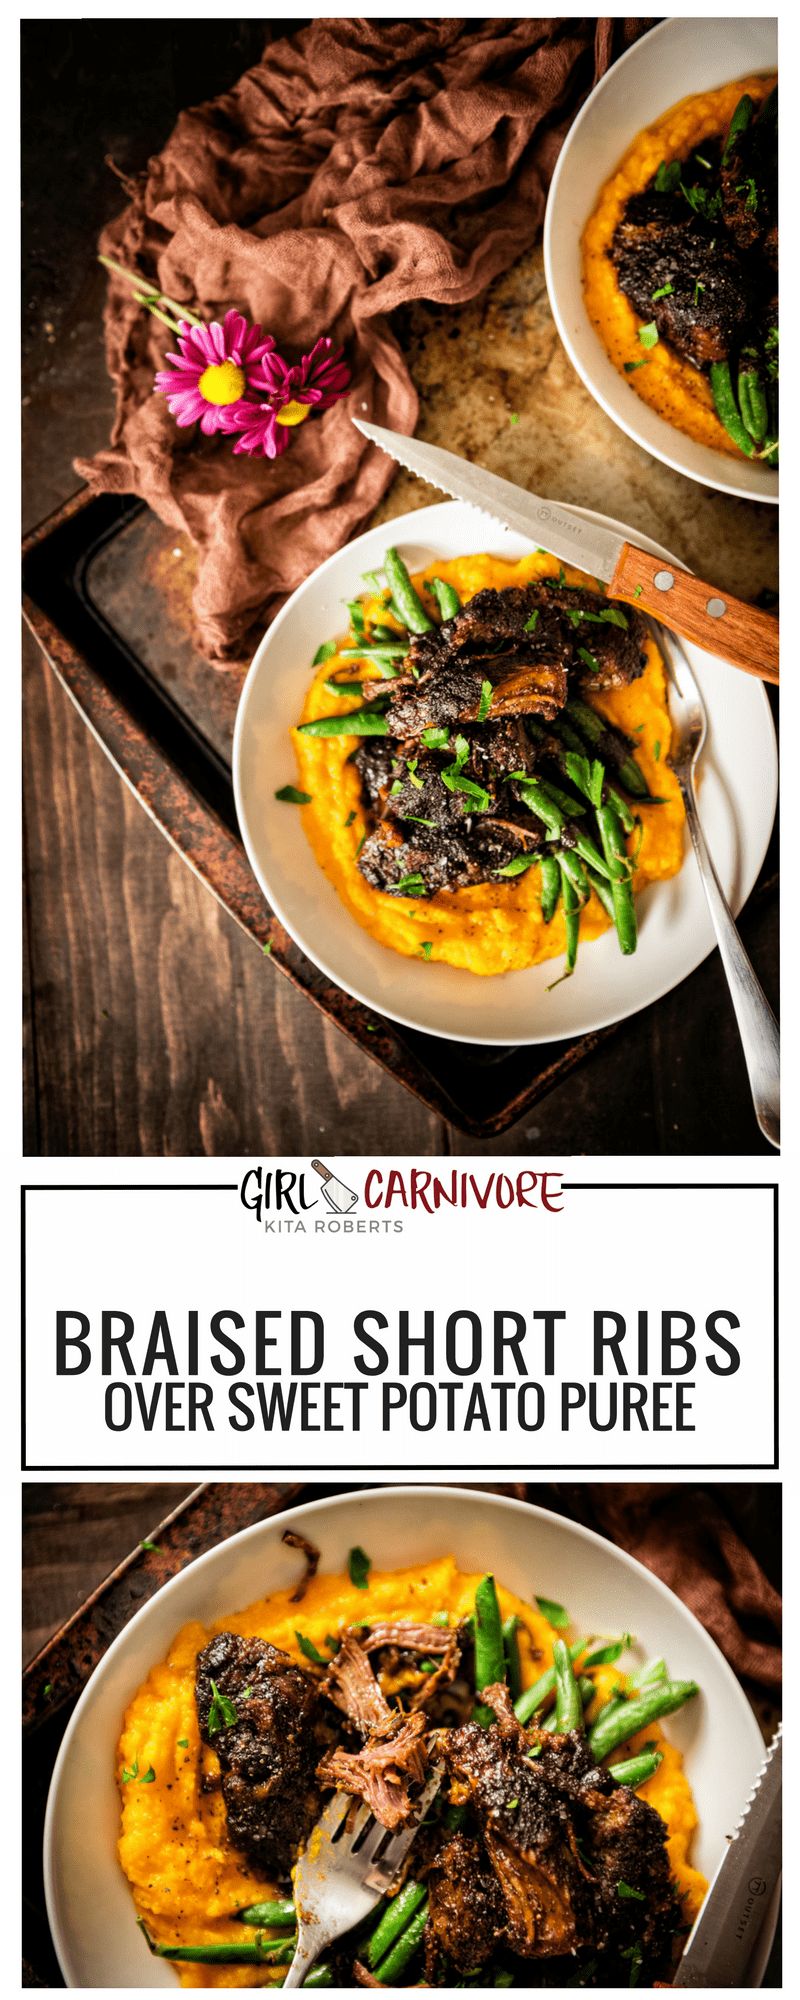 Braised Short Ribs over Sweet Potato Puree